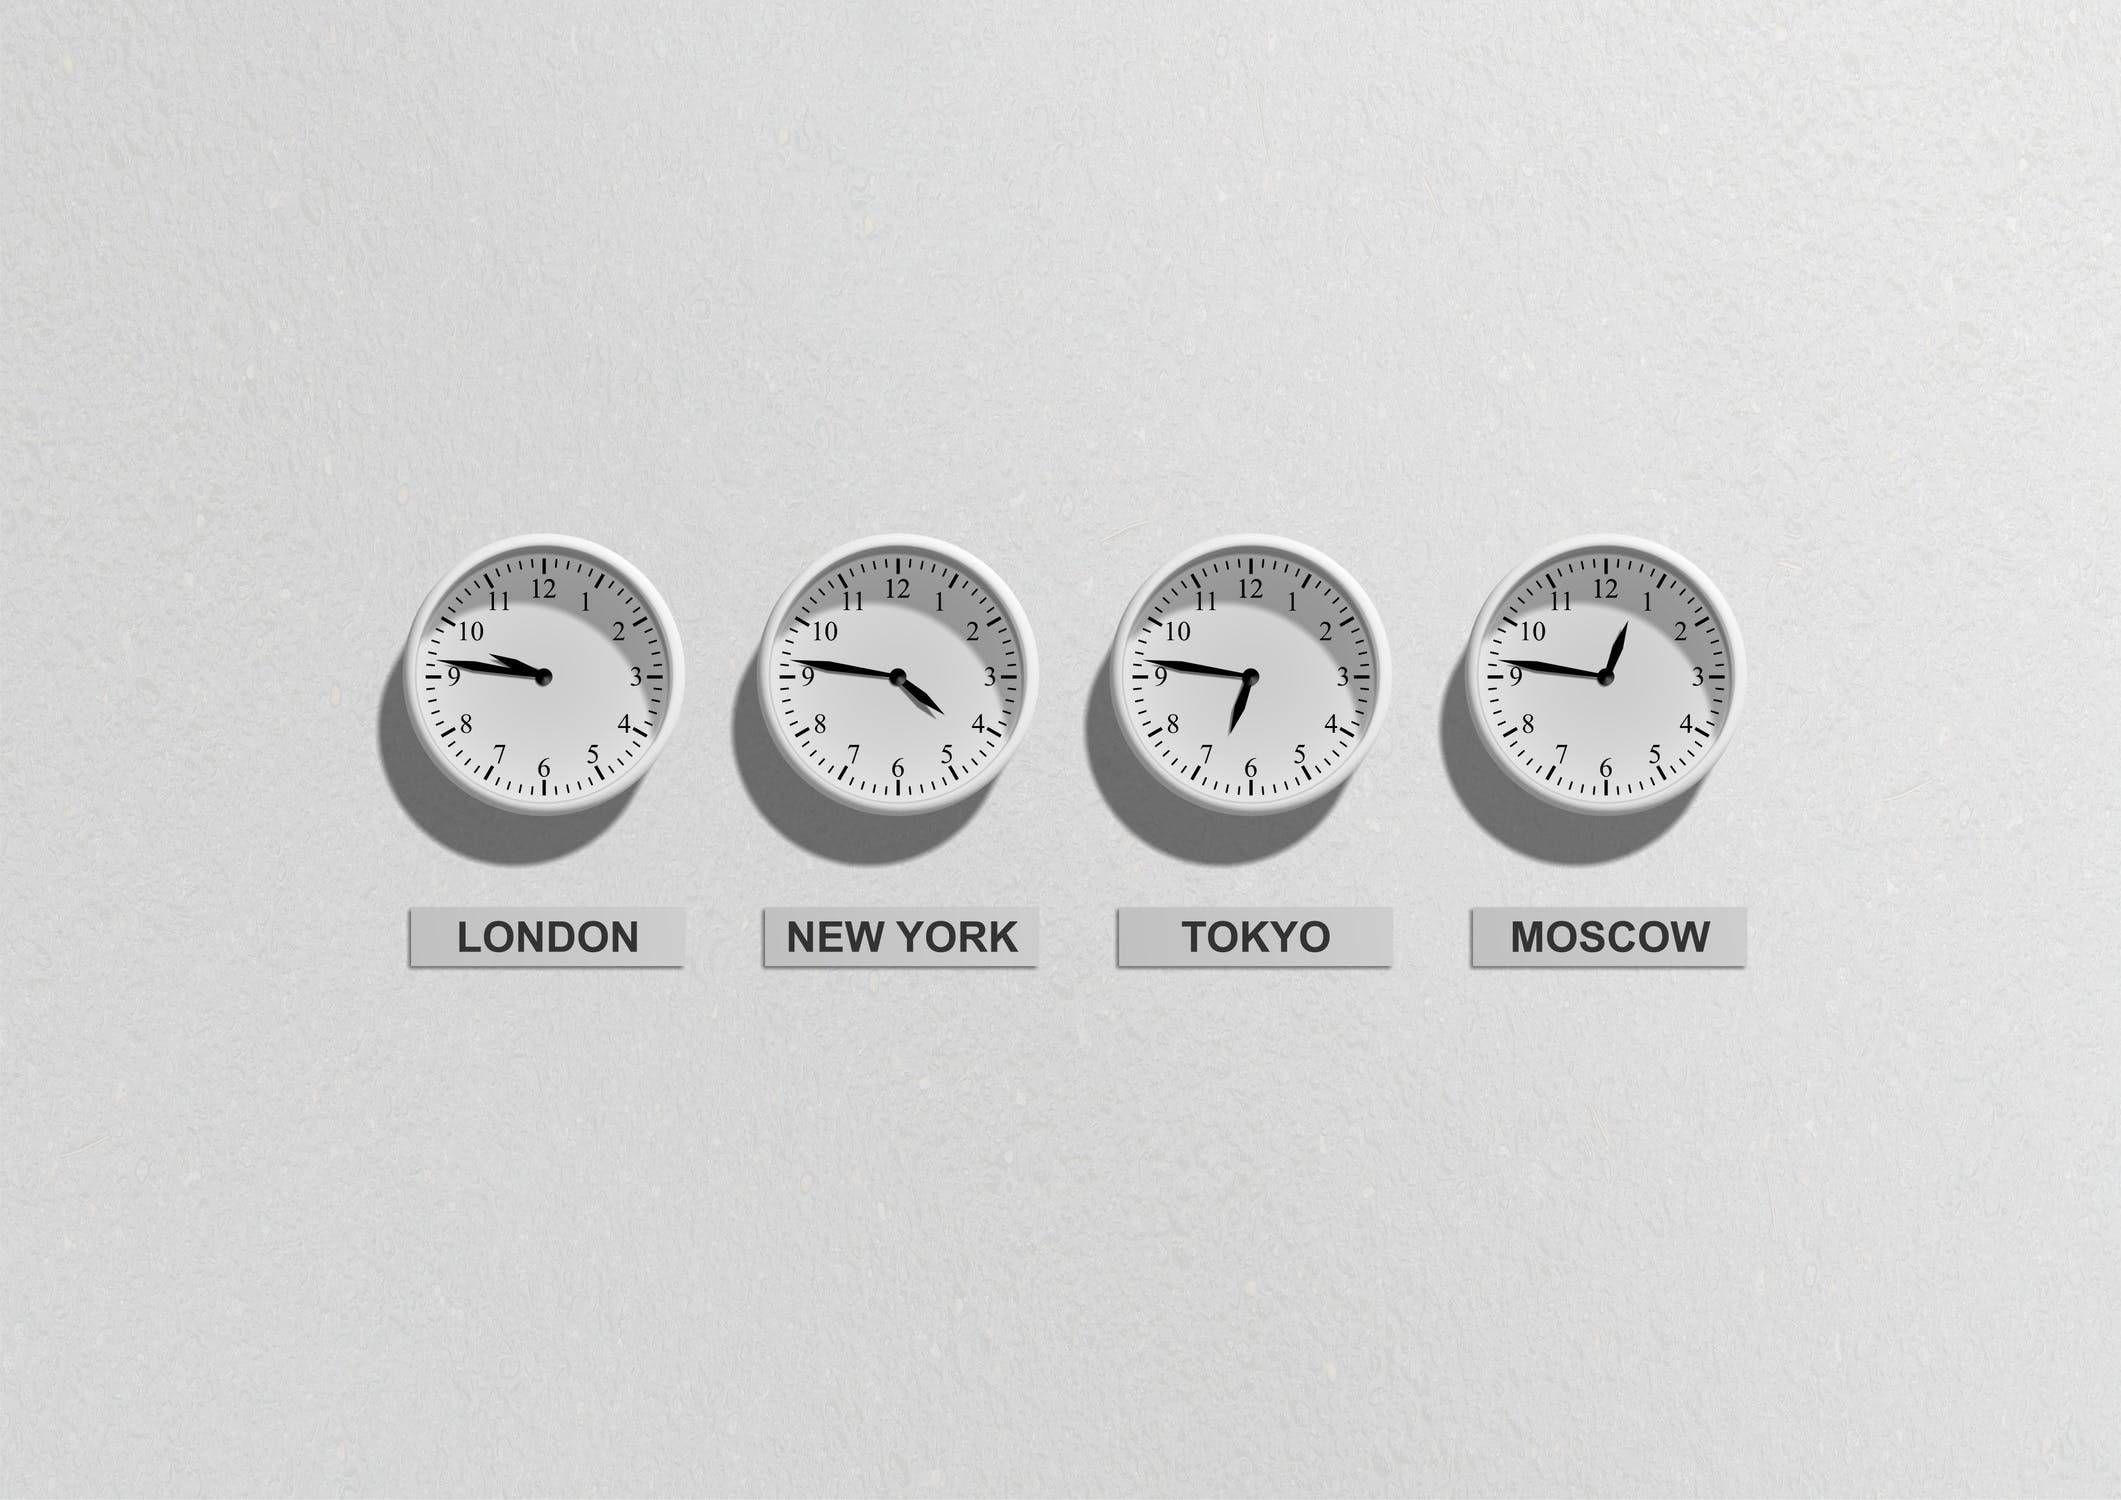 Image of four clocks set to different time zones, depicting customer expectations of 24/7 service.